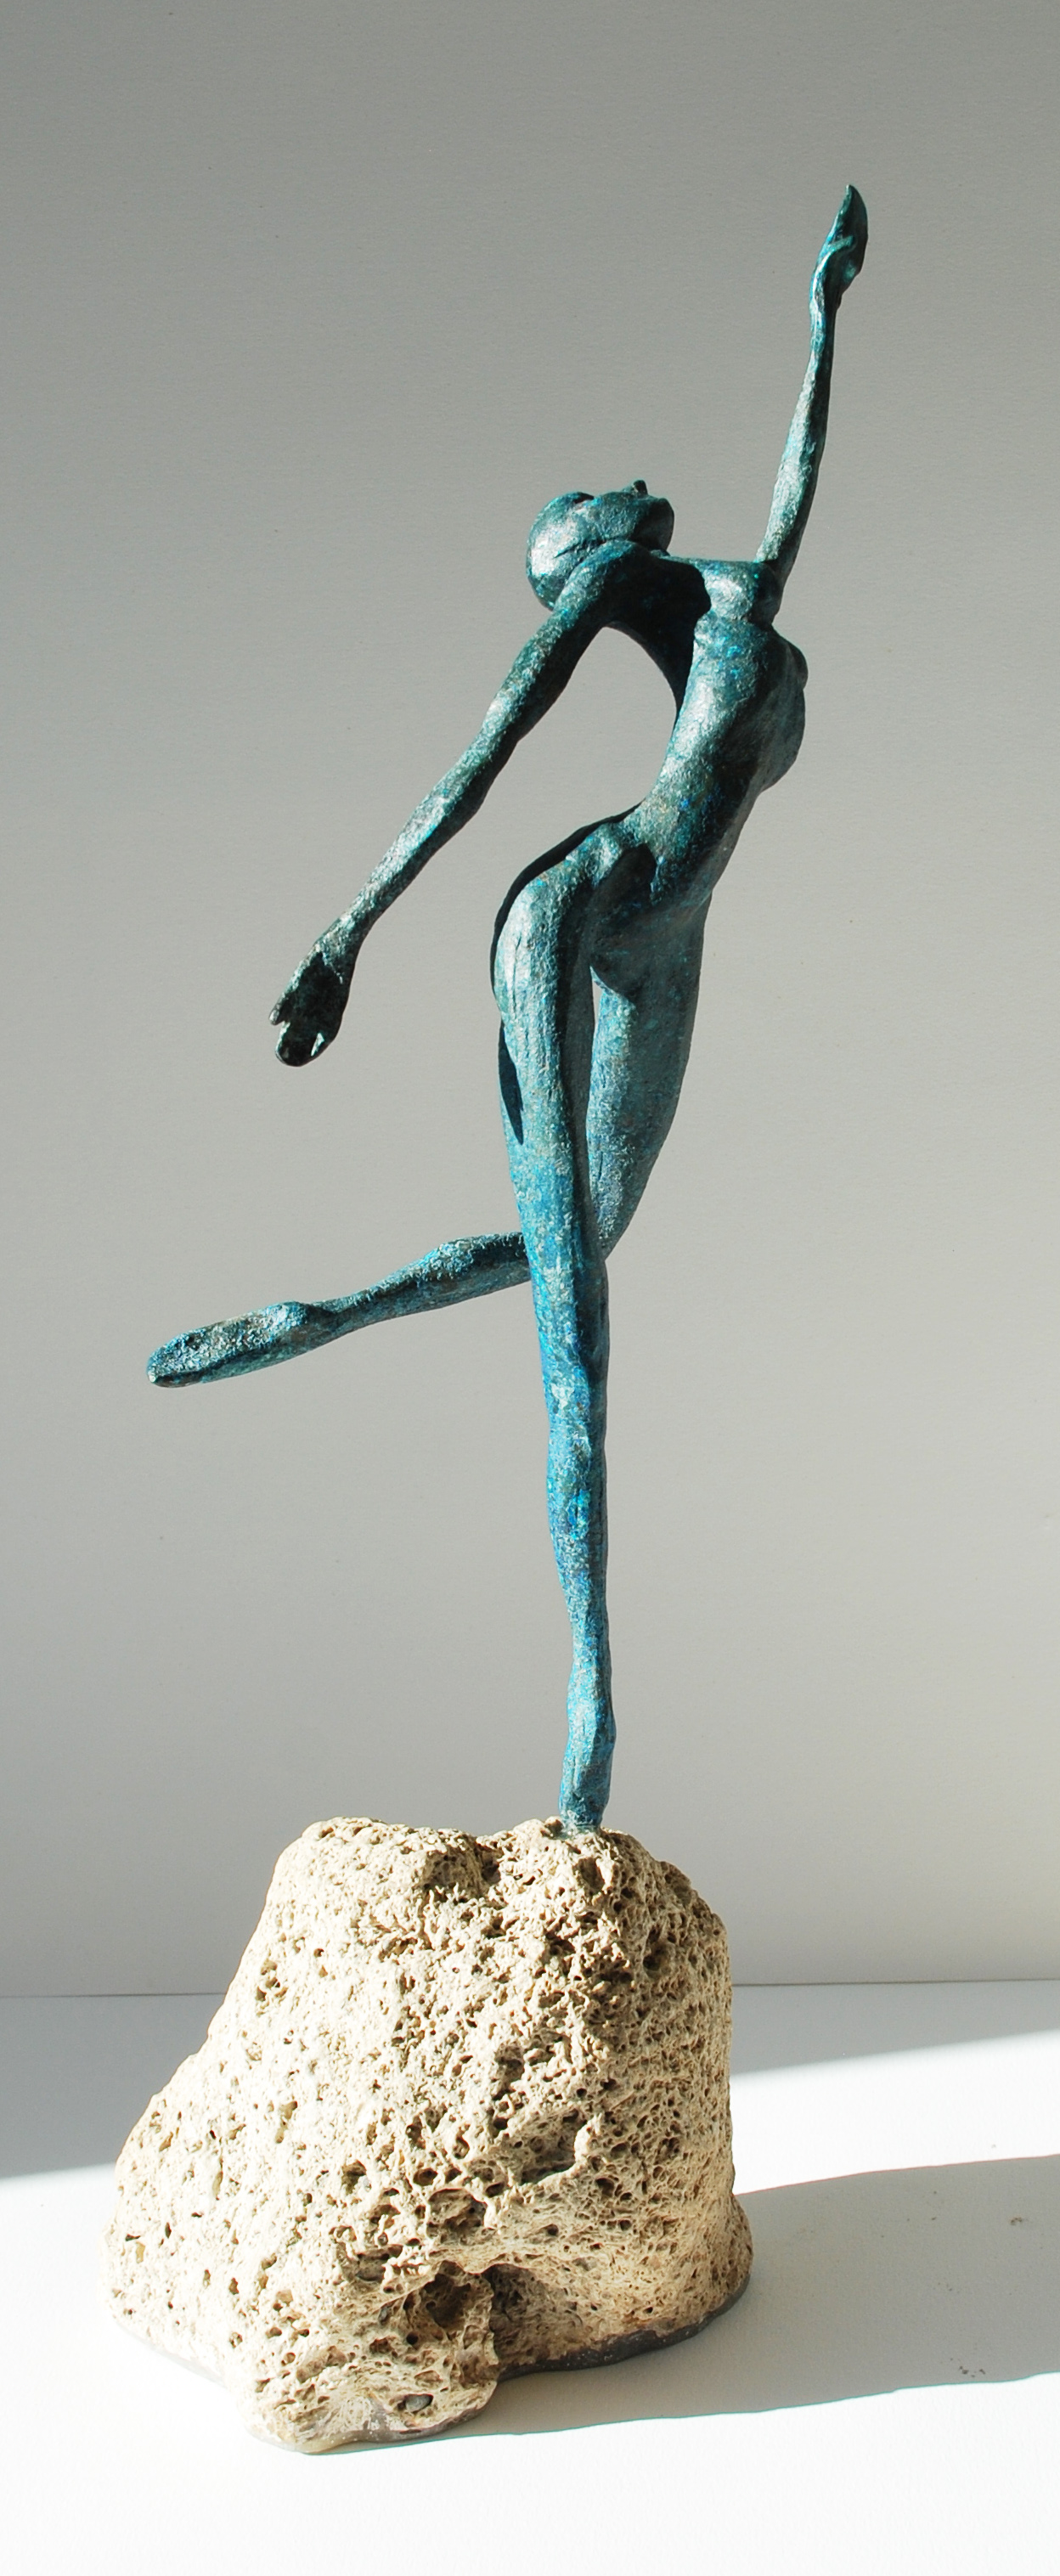 Adagio in blue.jpg